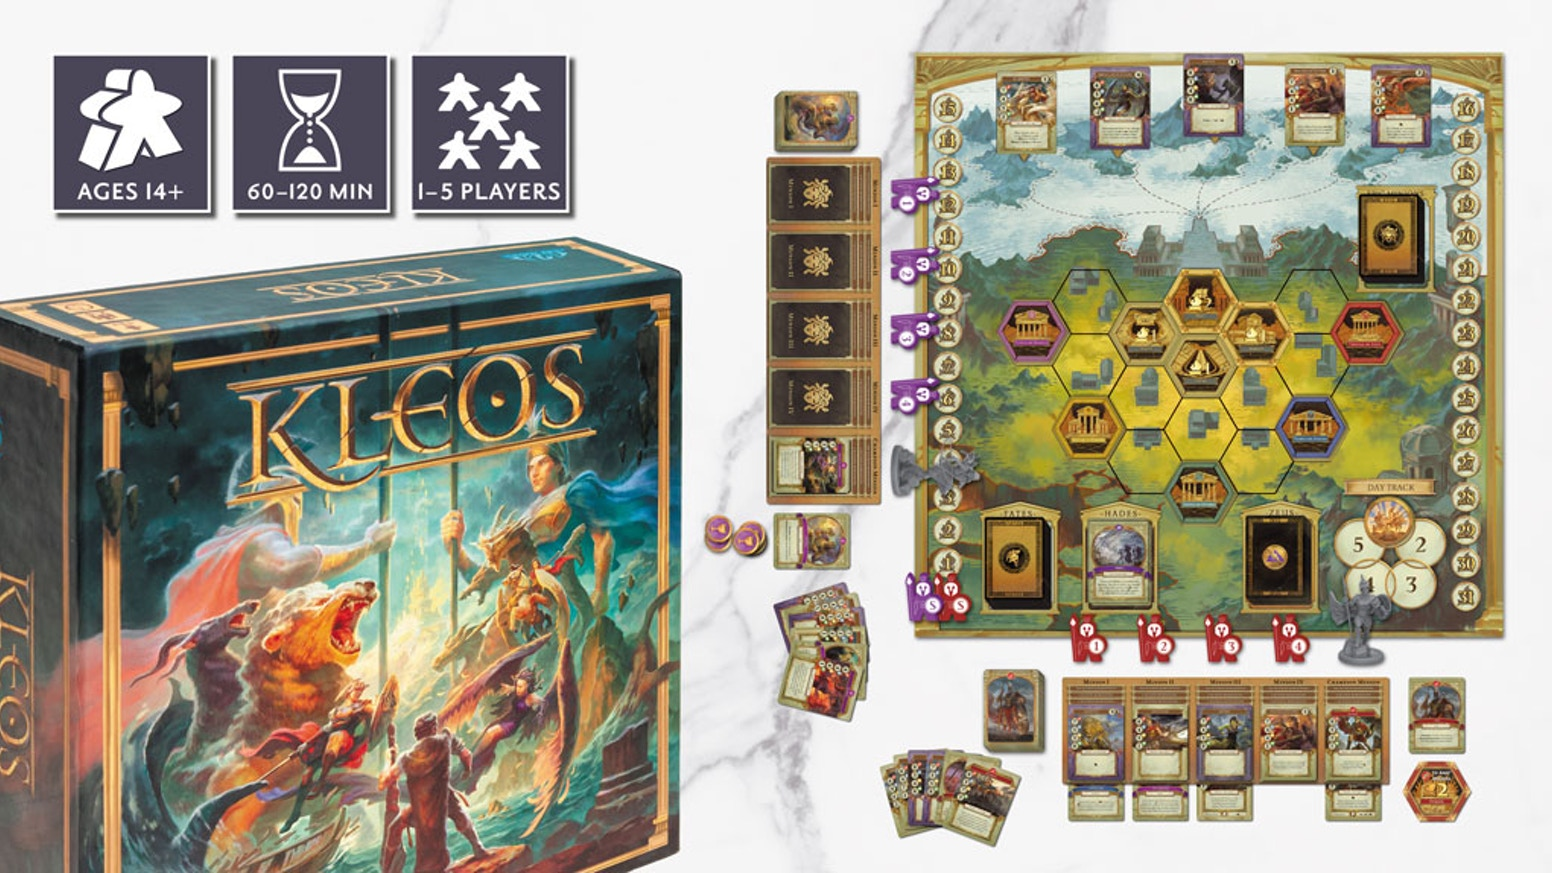 A contest has arisen among the gods!  Card play, tactical hex-based combat, and area control in a board game for 1-5 Greek Gods.